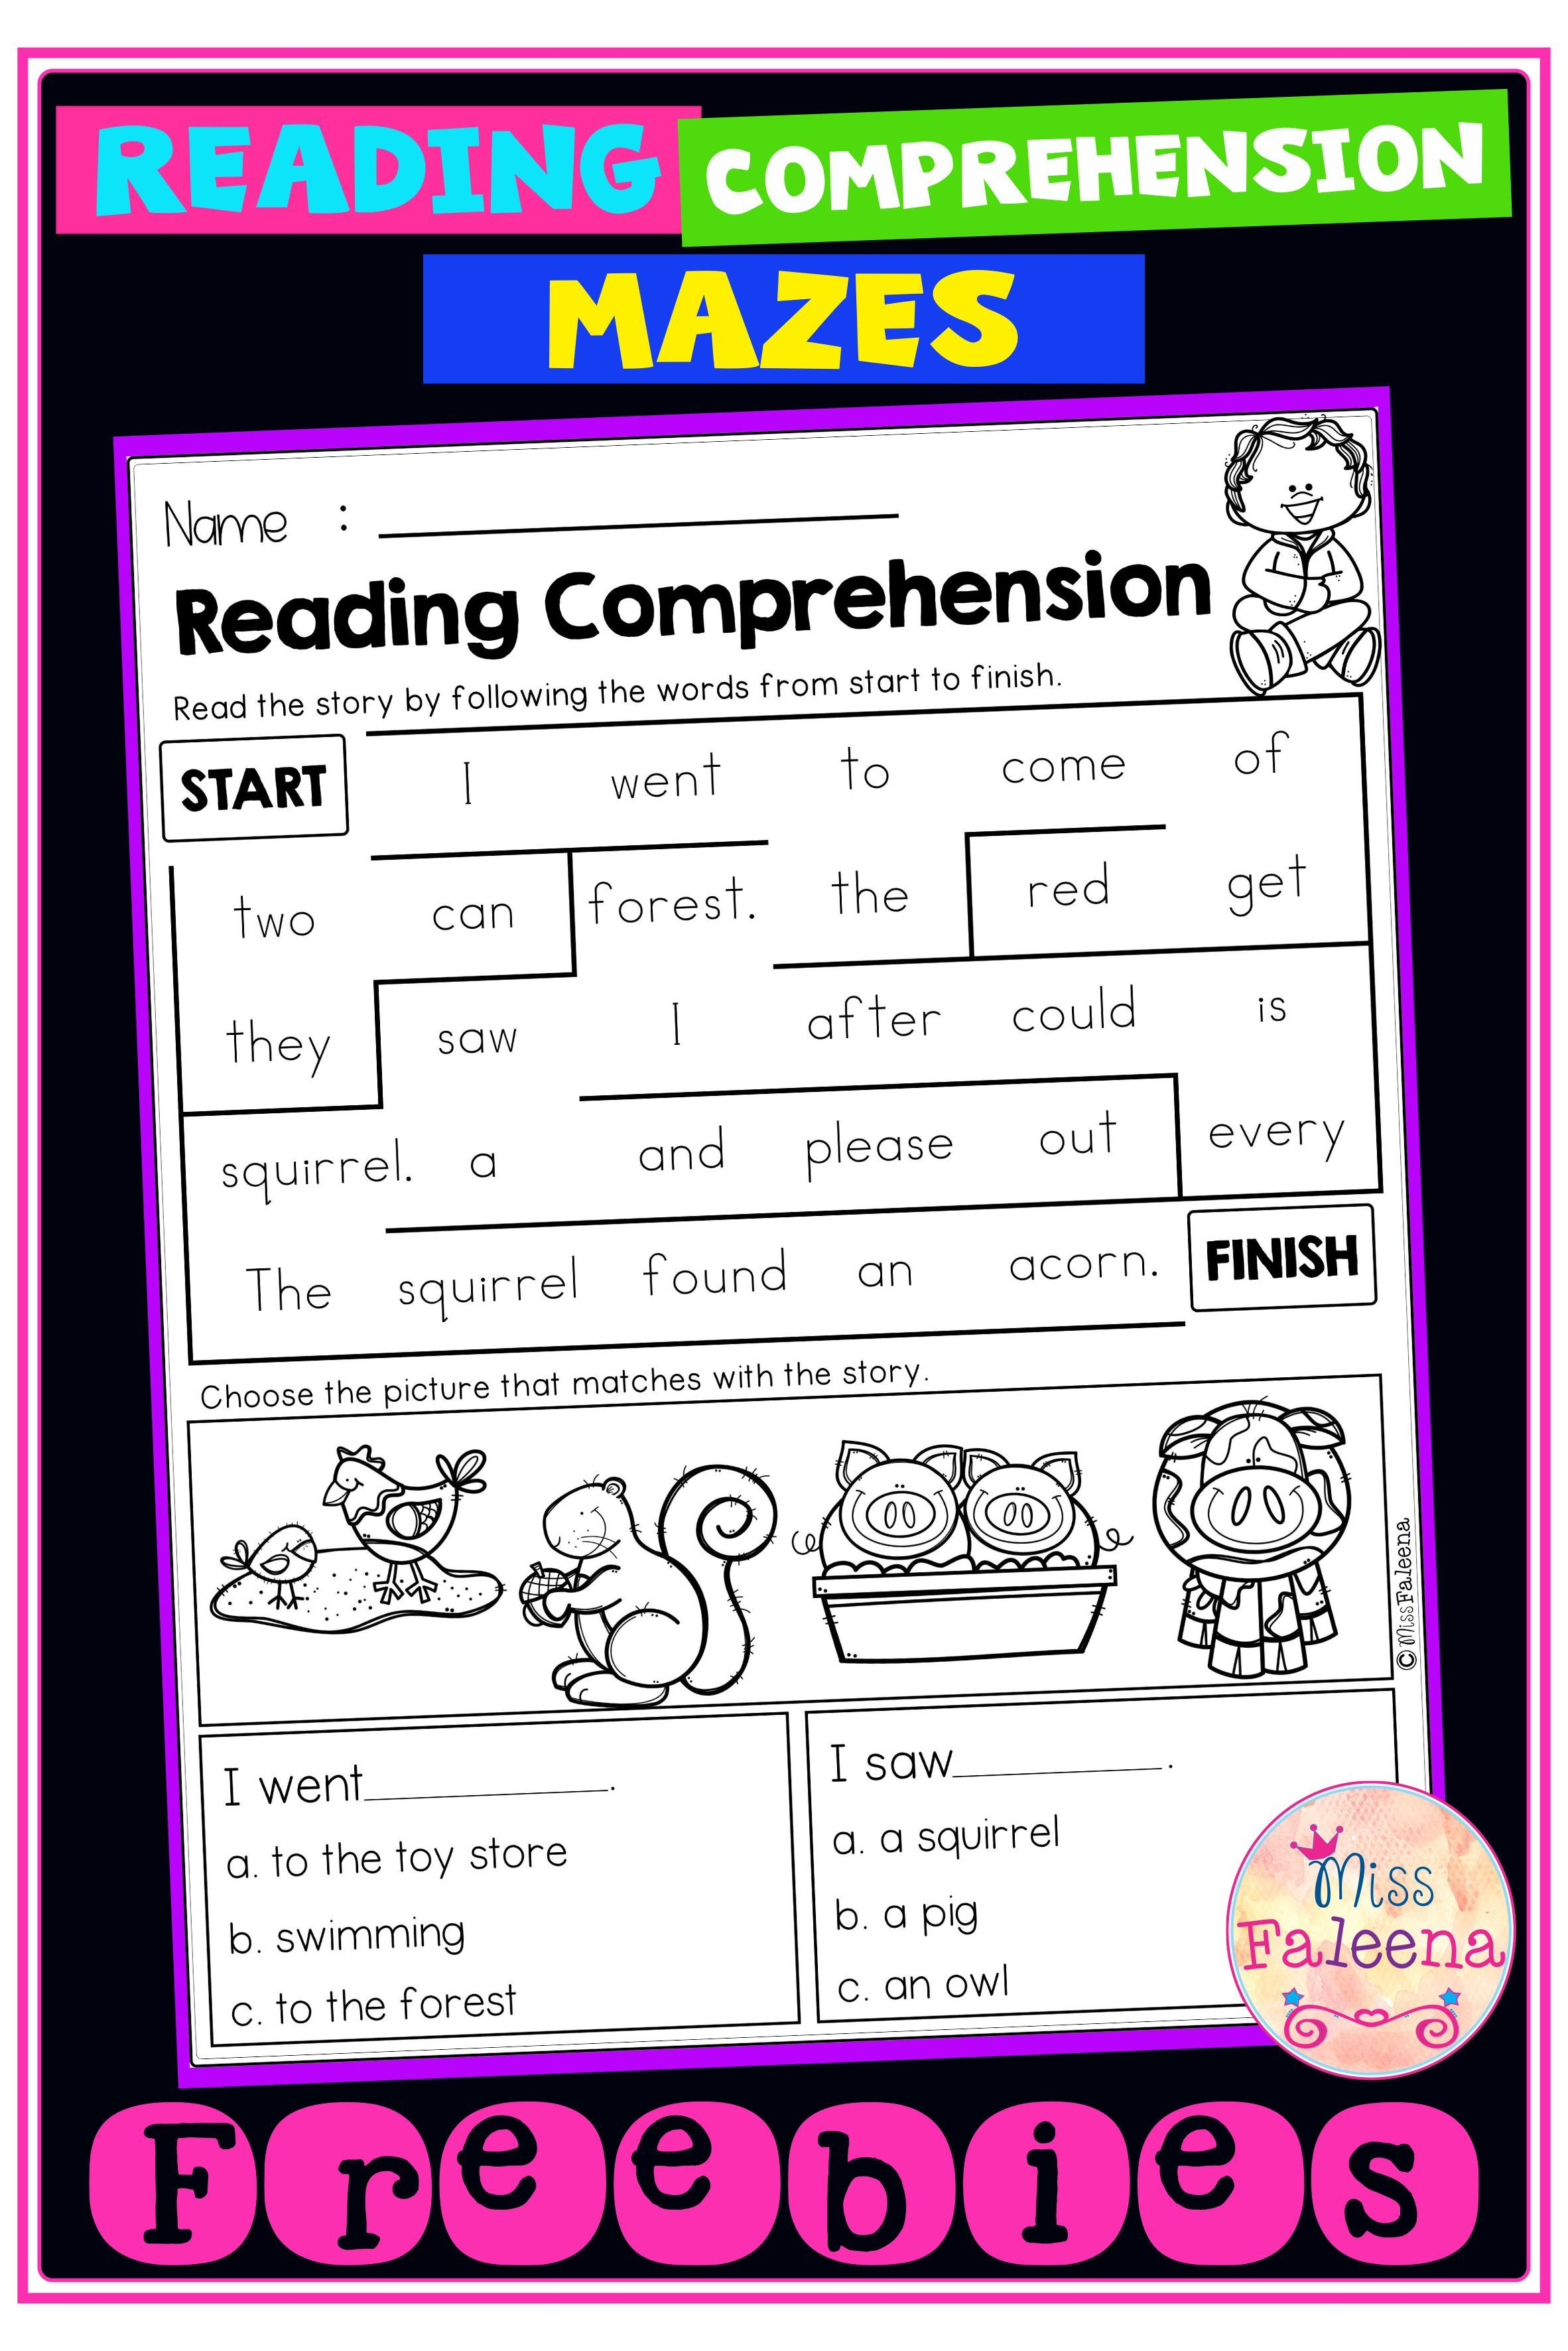 Free Reading Comprehension Mazes Reading Comprehension Reading Comprehension Worksheets Teaching First Grade [ 3544 x 2364 Pixel ]